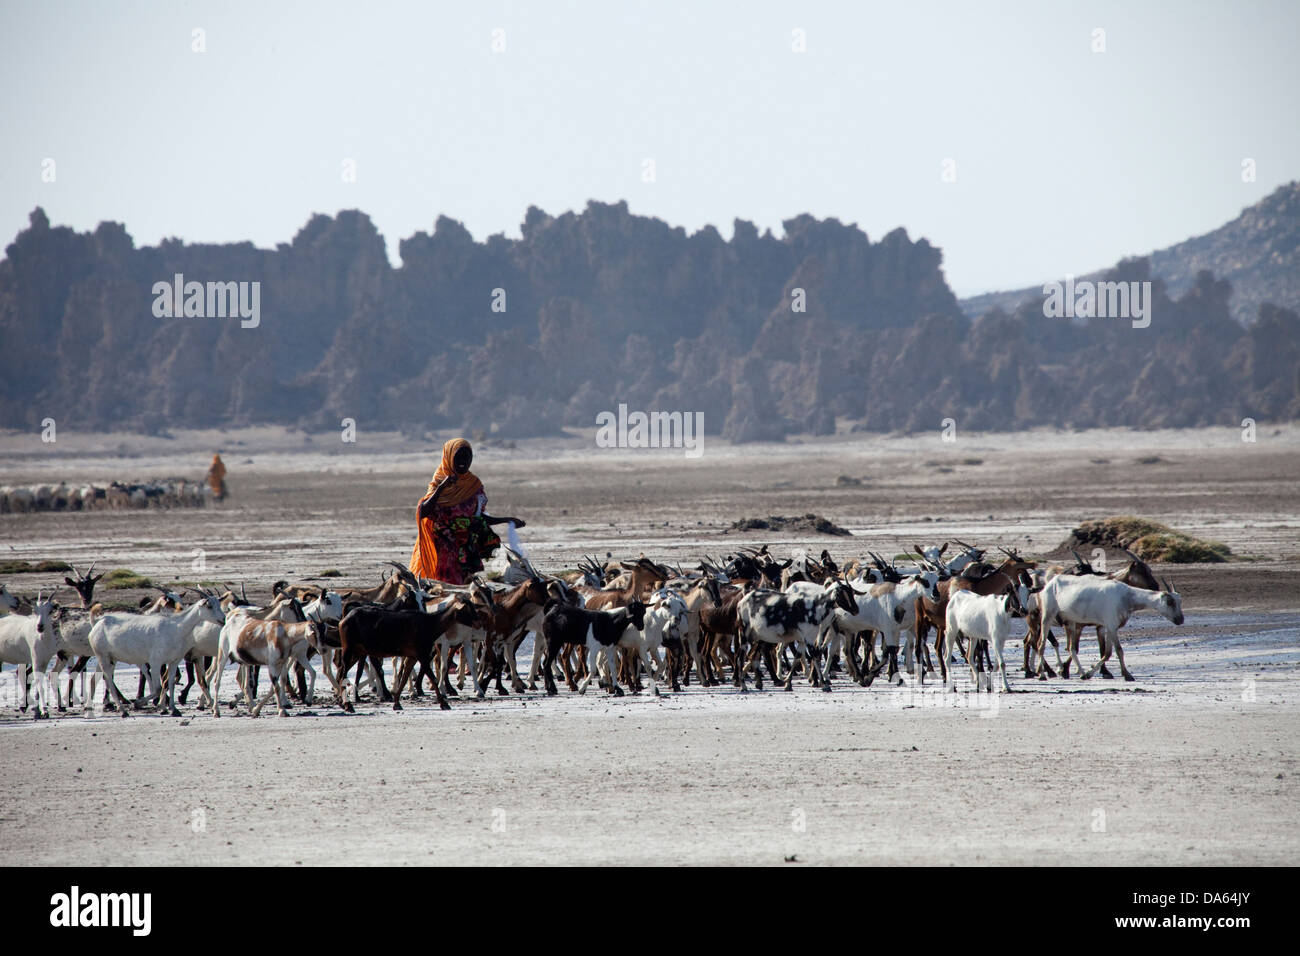 herd of goats, goats, nanny goats, Abbesee, Djibouti, Africa, scenery, landscape, nature, lake, lakes, agriculture, - Stock Image